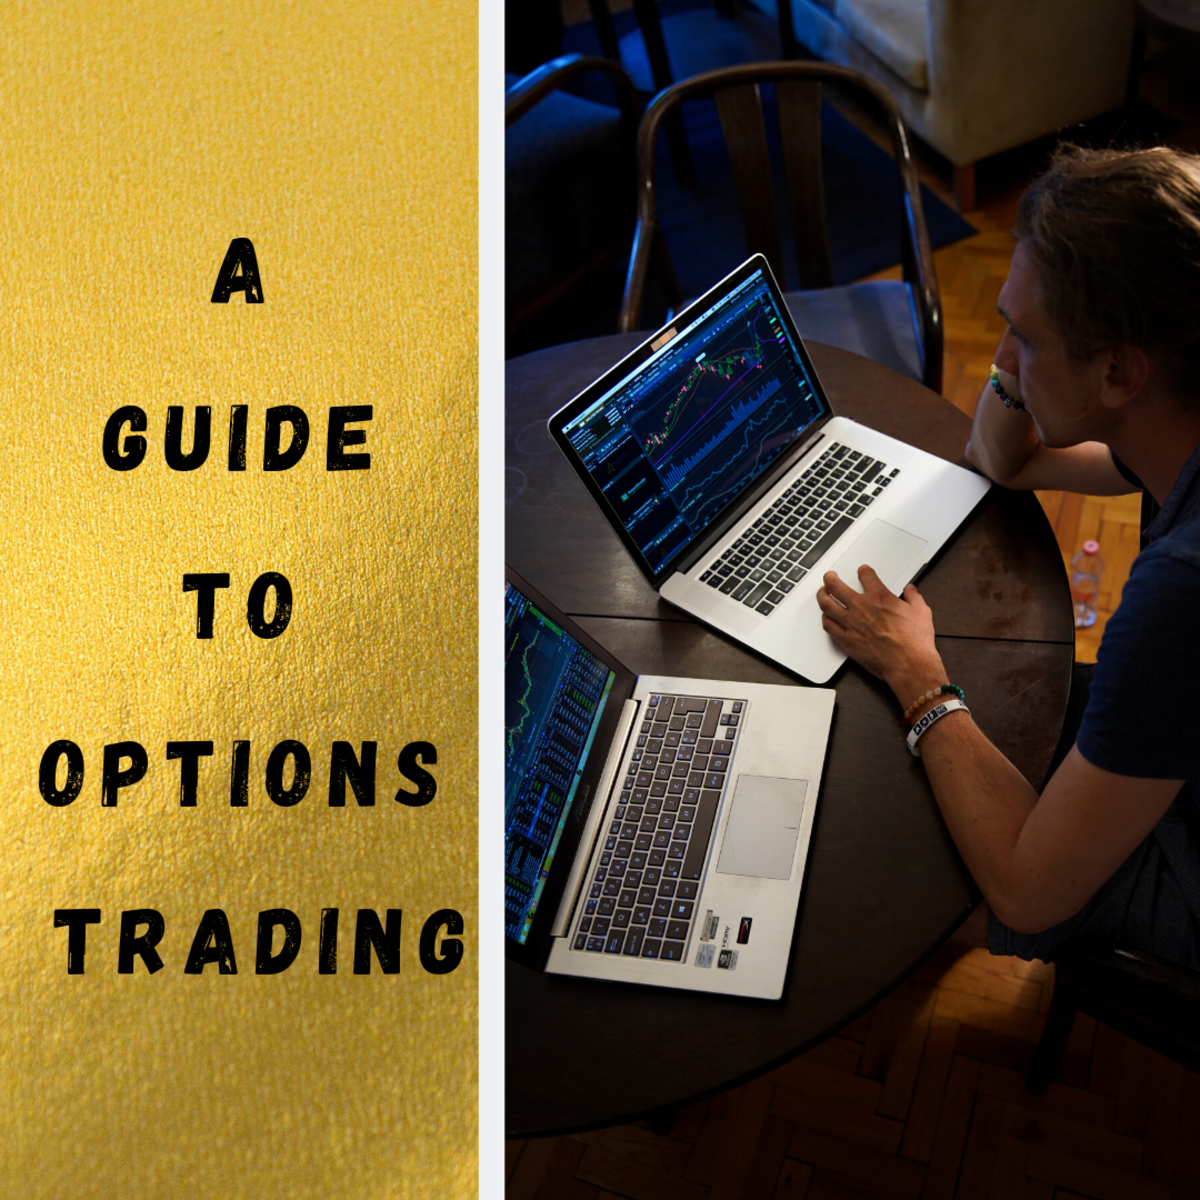 Options are fairly simple derivatives, but they can be tricky. Read on to learn more.